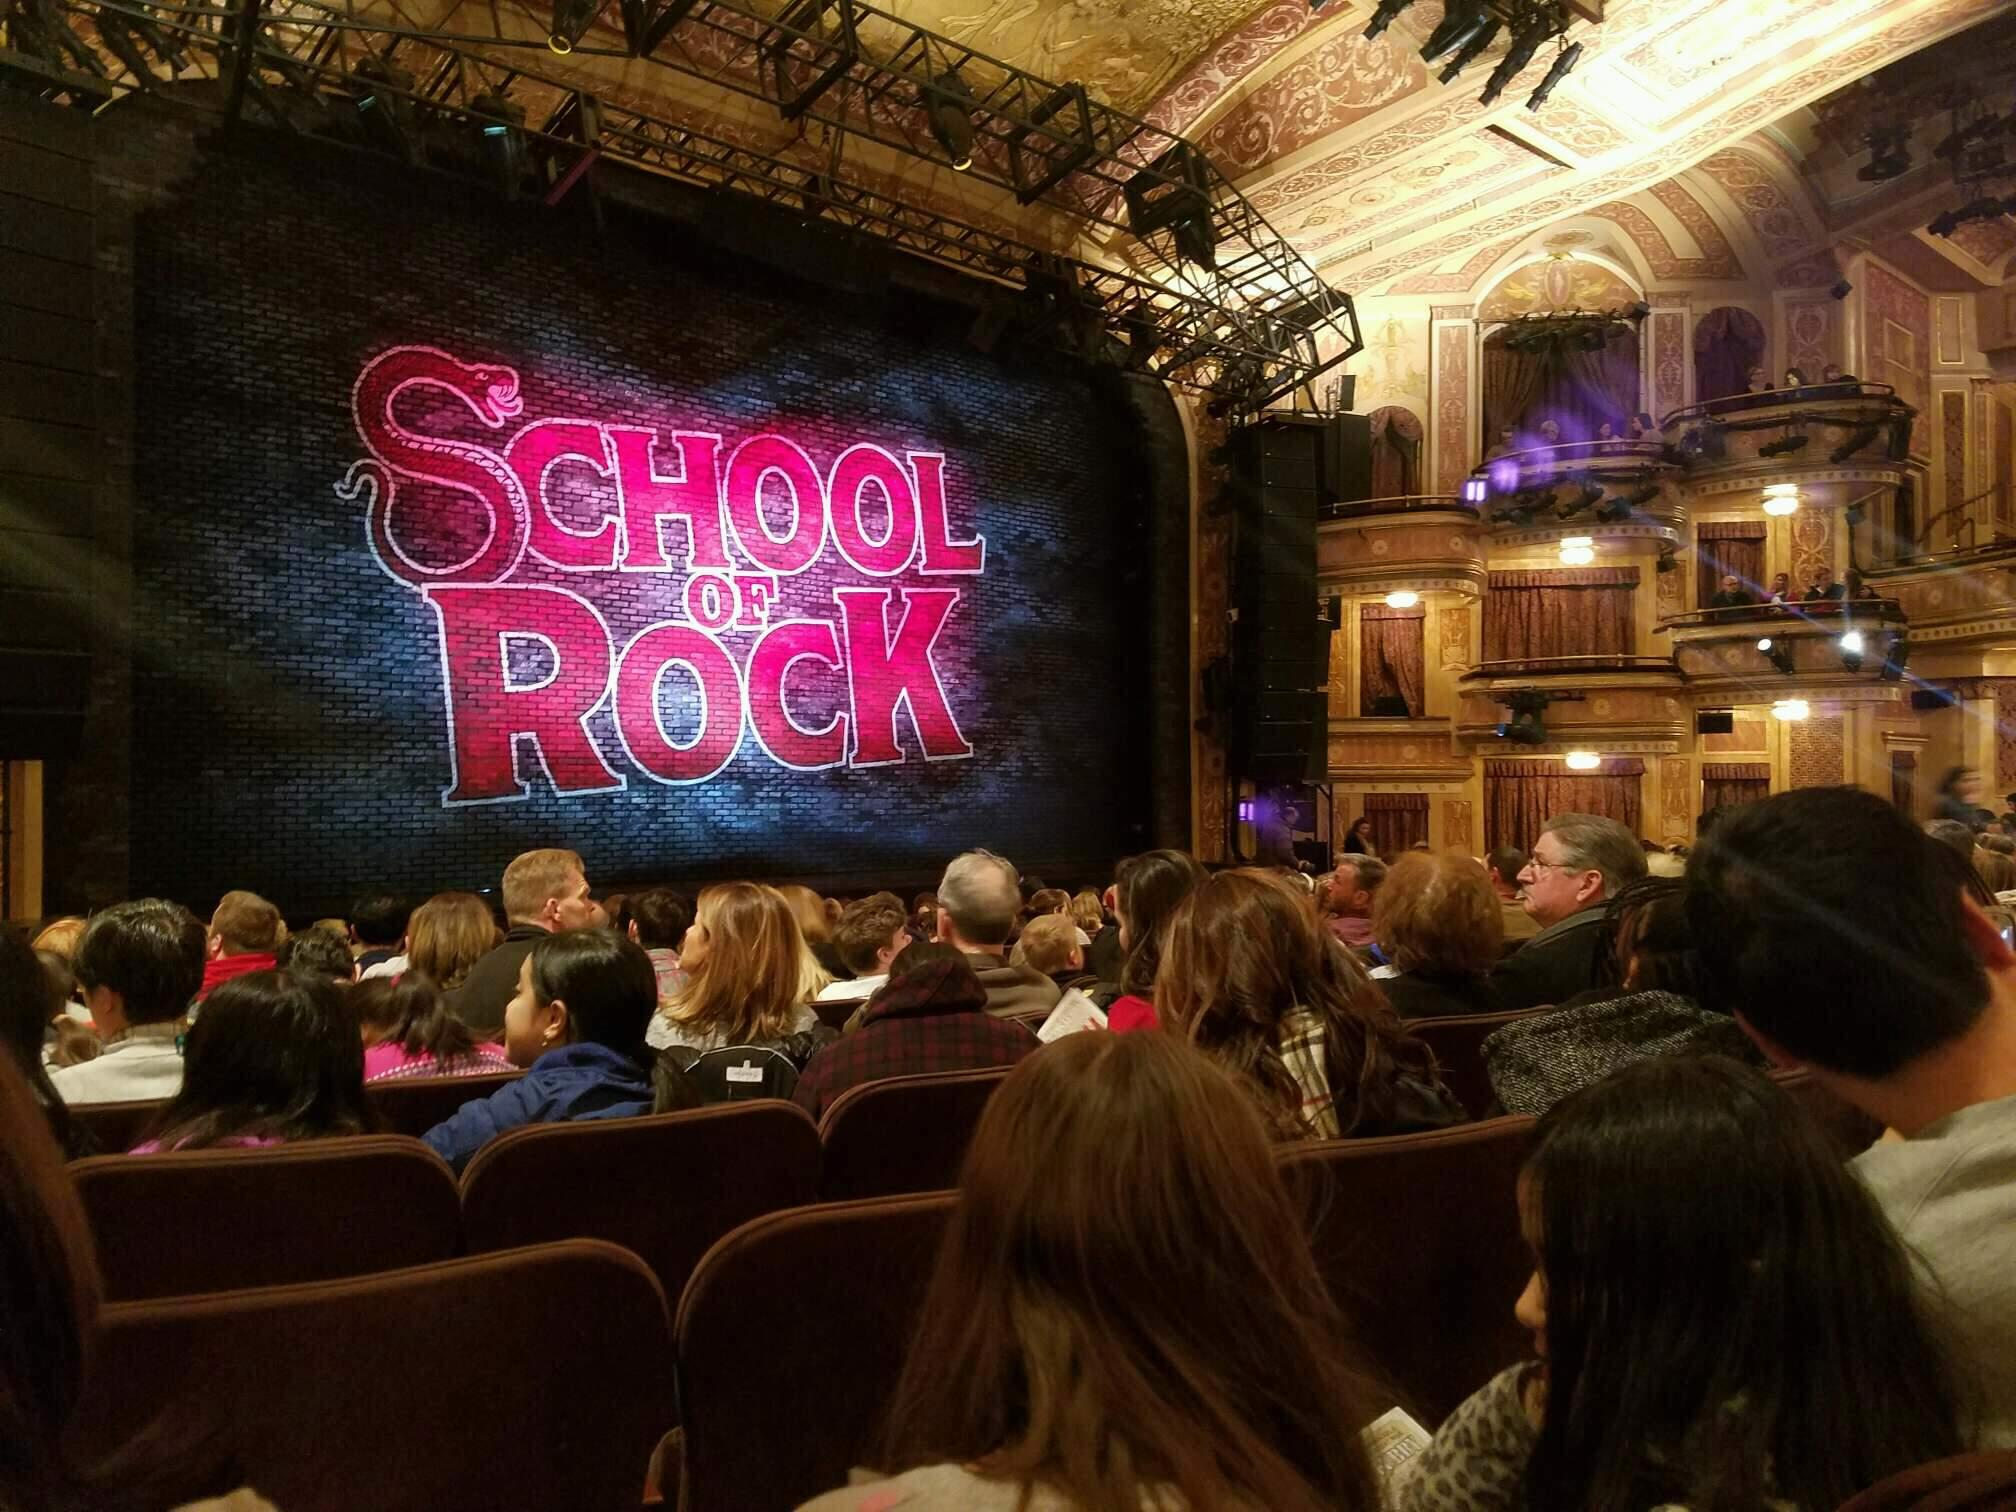 Winter Garden Theatre Section Orchestra Row P Seat 16